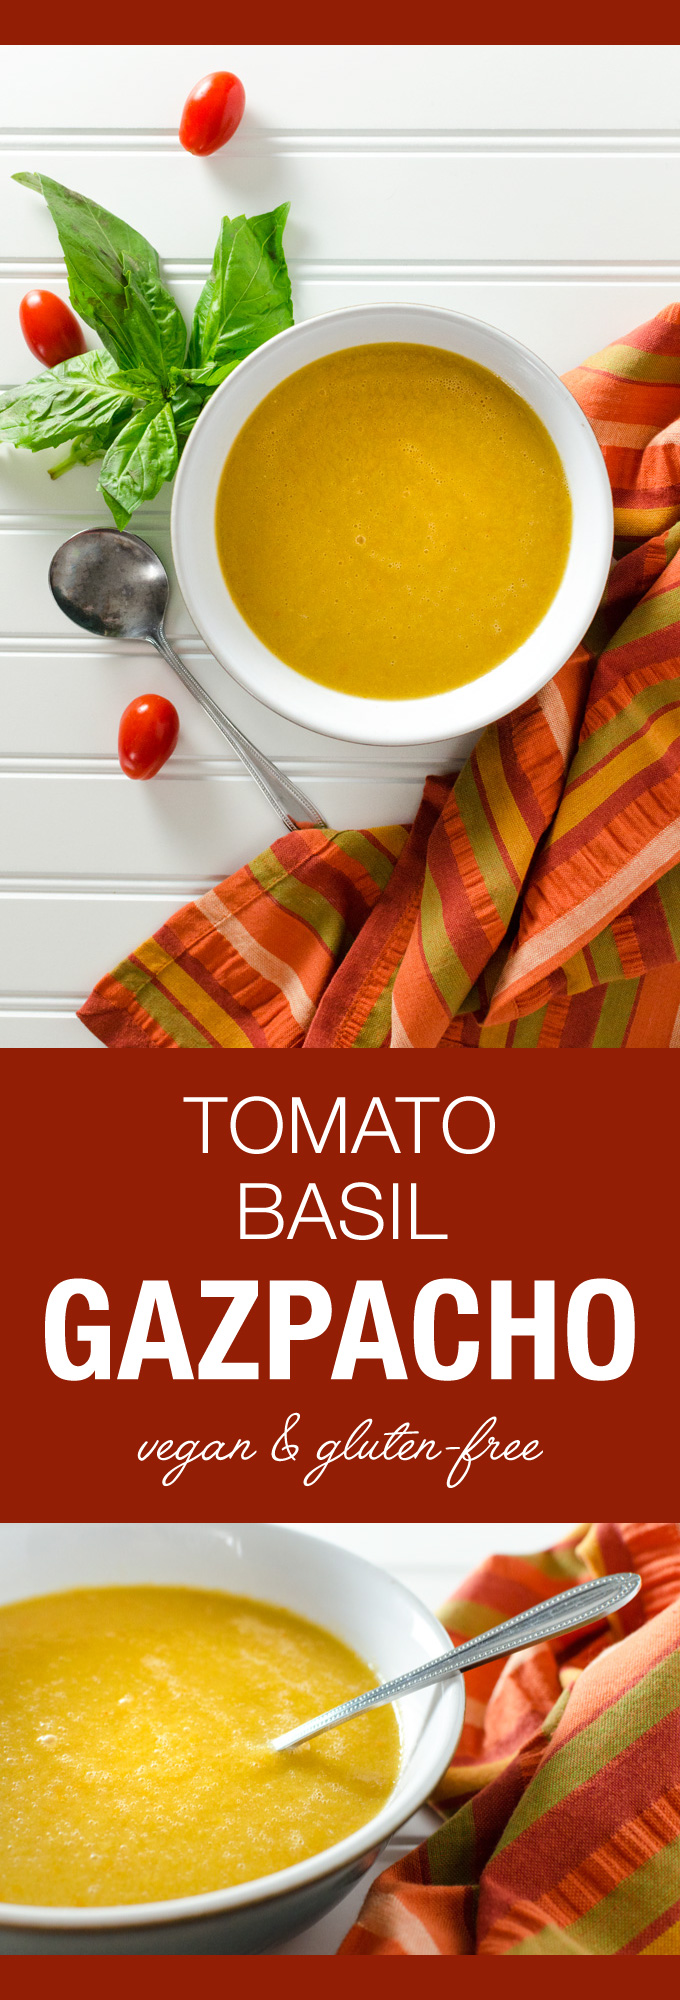 Simple tomato basil gazpacho veggie primer simple tomato basil gazpacho an easy raw vegan gluten free cold soup recipe you forumfinder Image collections